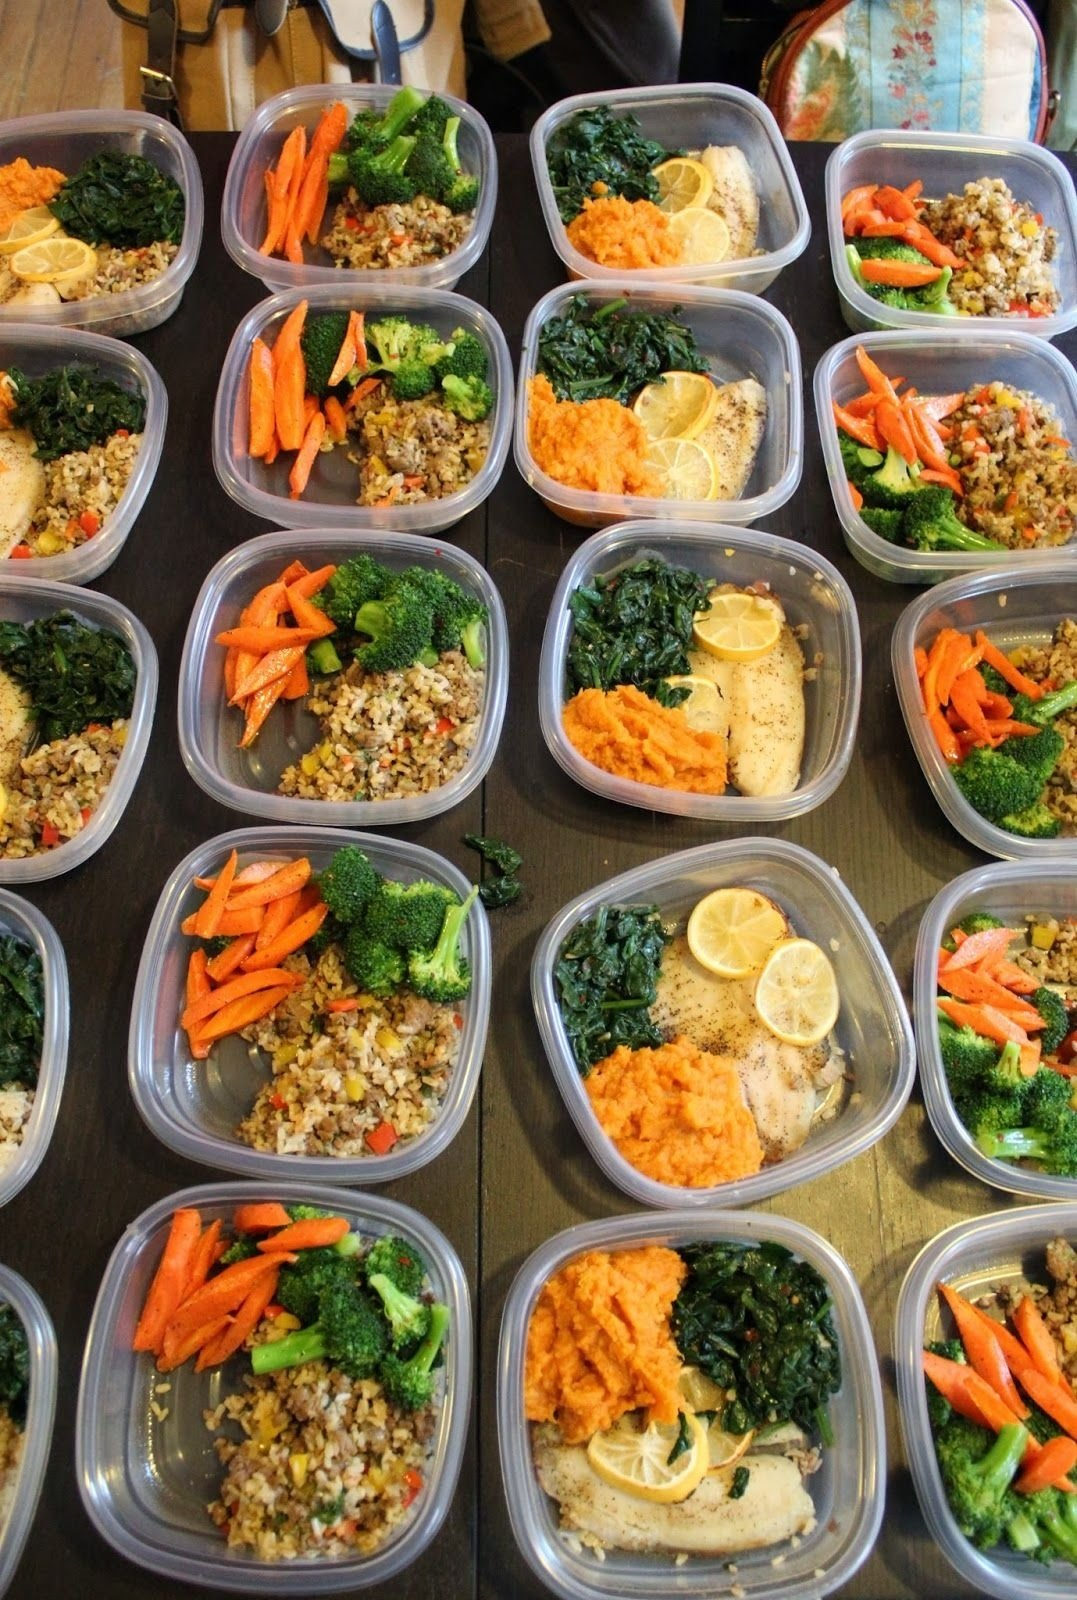 10 Fantastic Cheap And Healthy Dinner Ideas mealprep expert tips for easy healthy and affordable meals all 2 2020